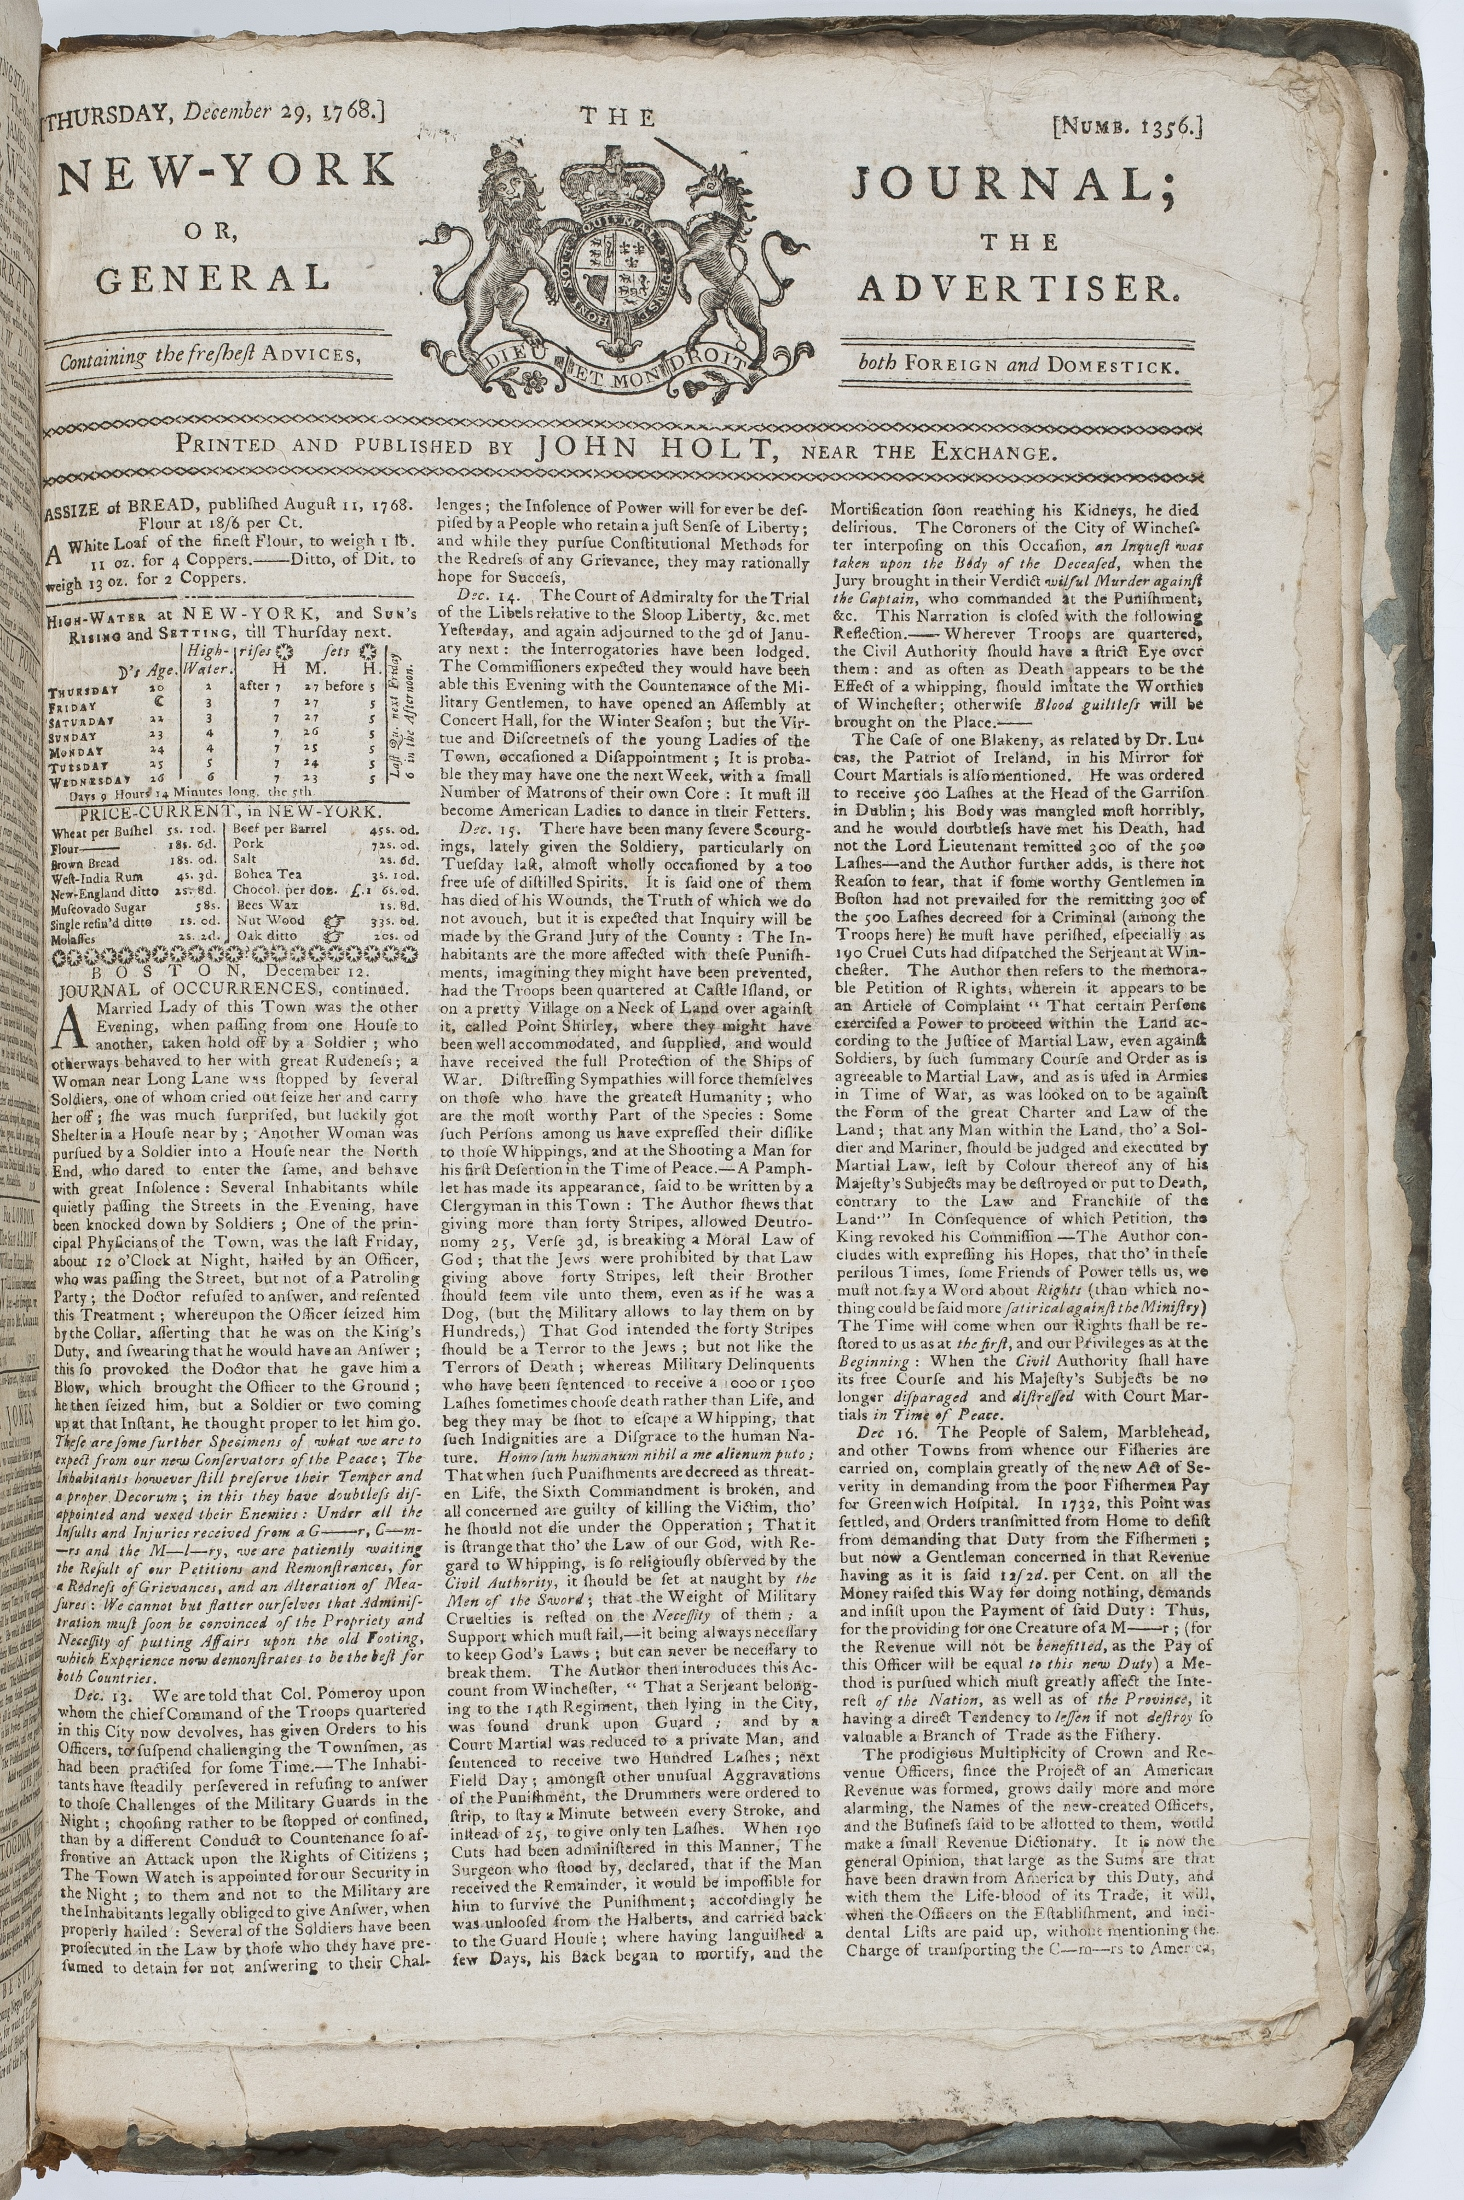 """Occupation Spreading >> """"Journal of Occurrences"""" · The News Media and the Making of America, 1730-1865"""